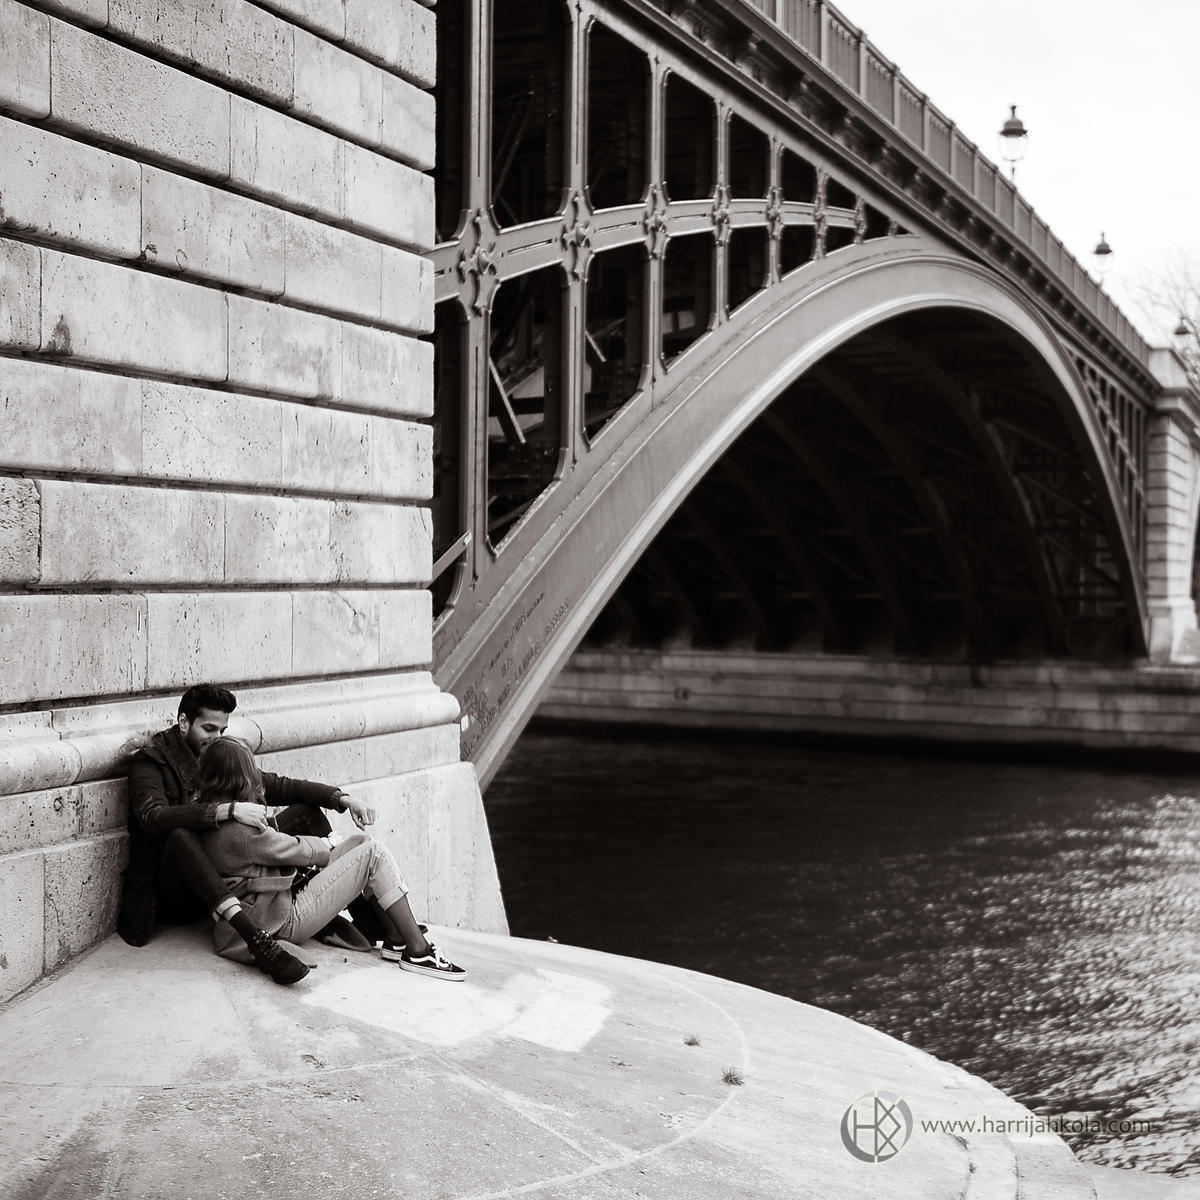 France - Paris (Pont de Sully - Couple II)